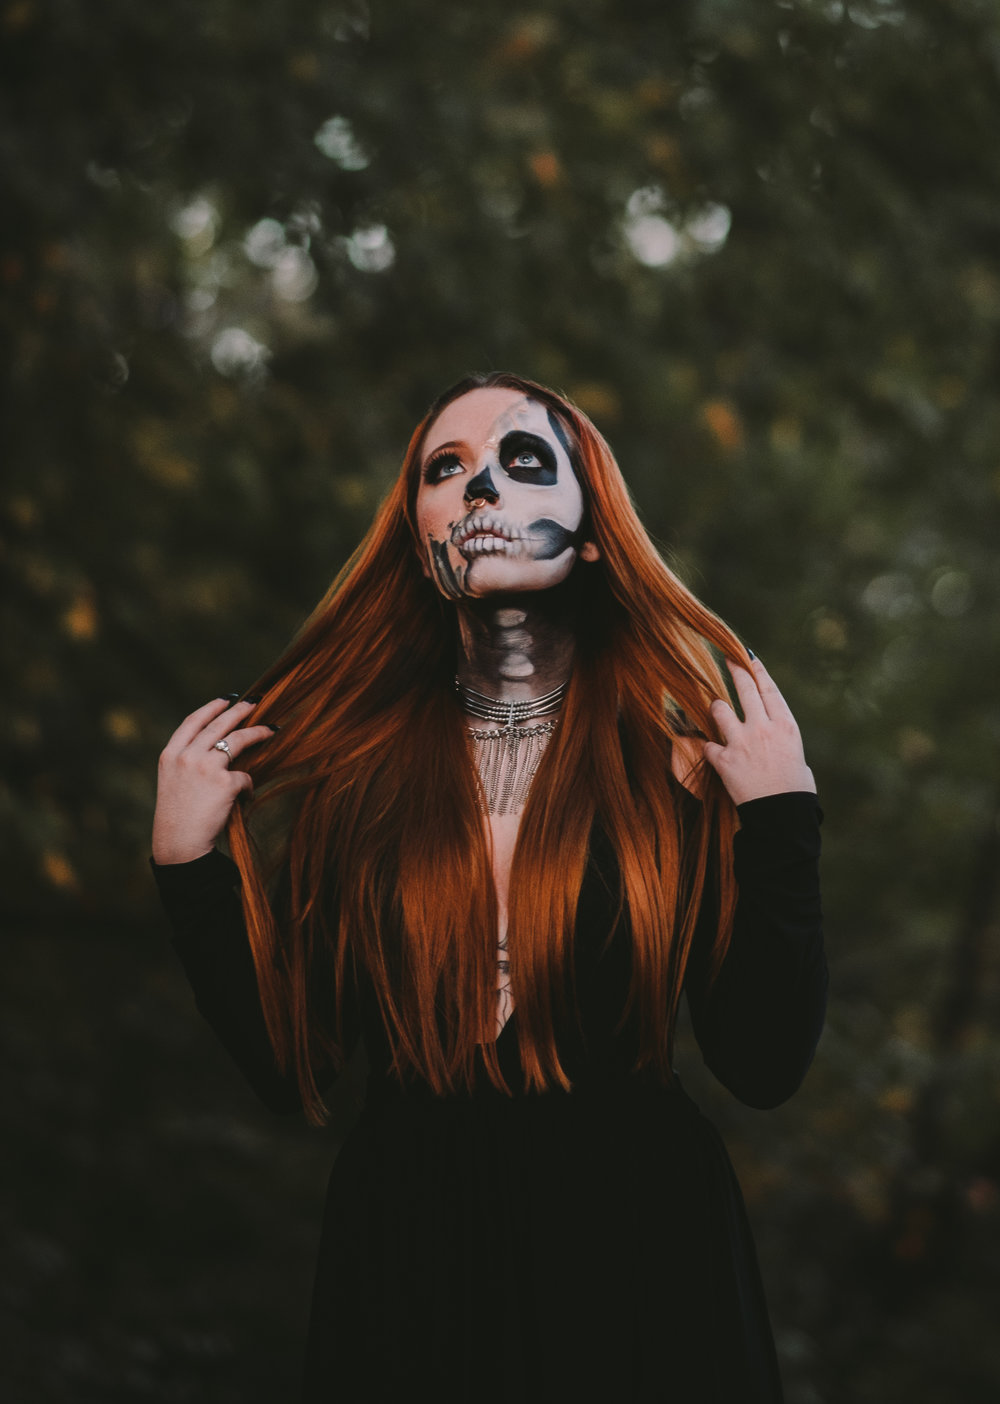 HalloweenSession_Fridaythe13th_October2017_IndianaPortraitPhotographer_SamanthaRosePhotography_--17.jpg